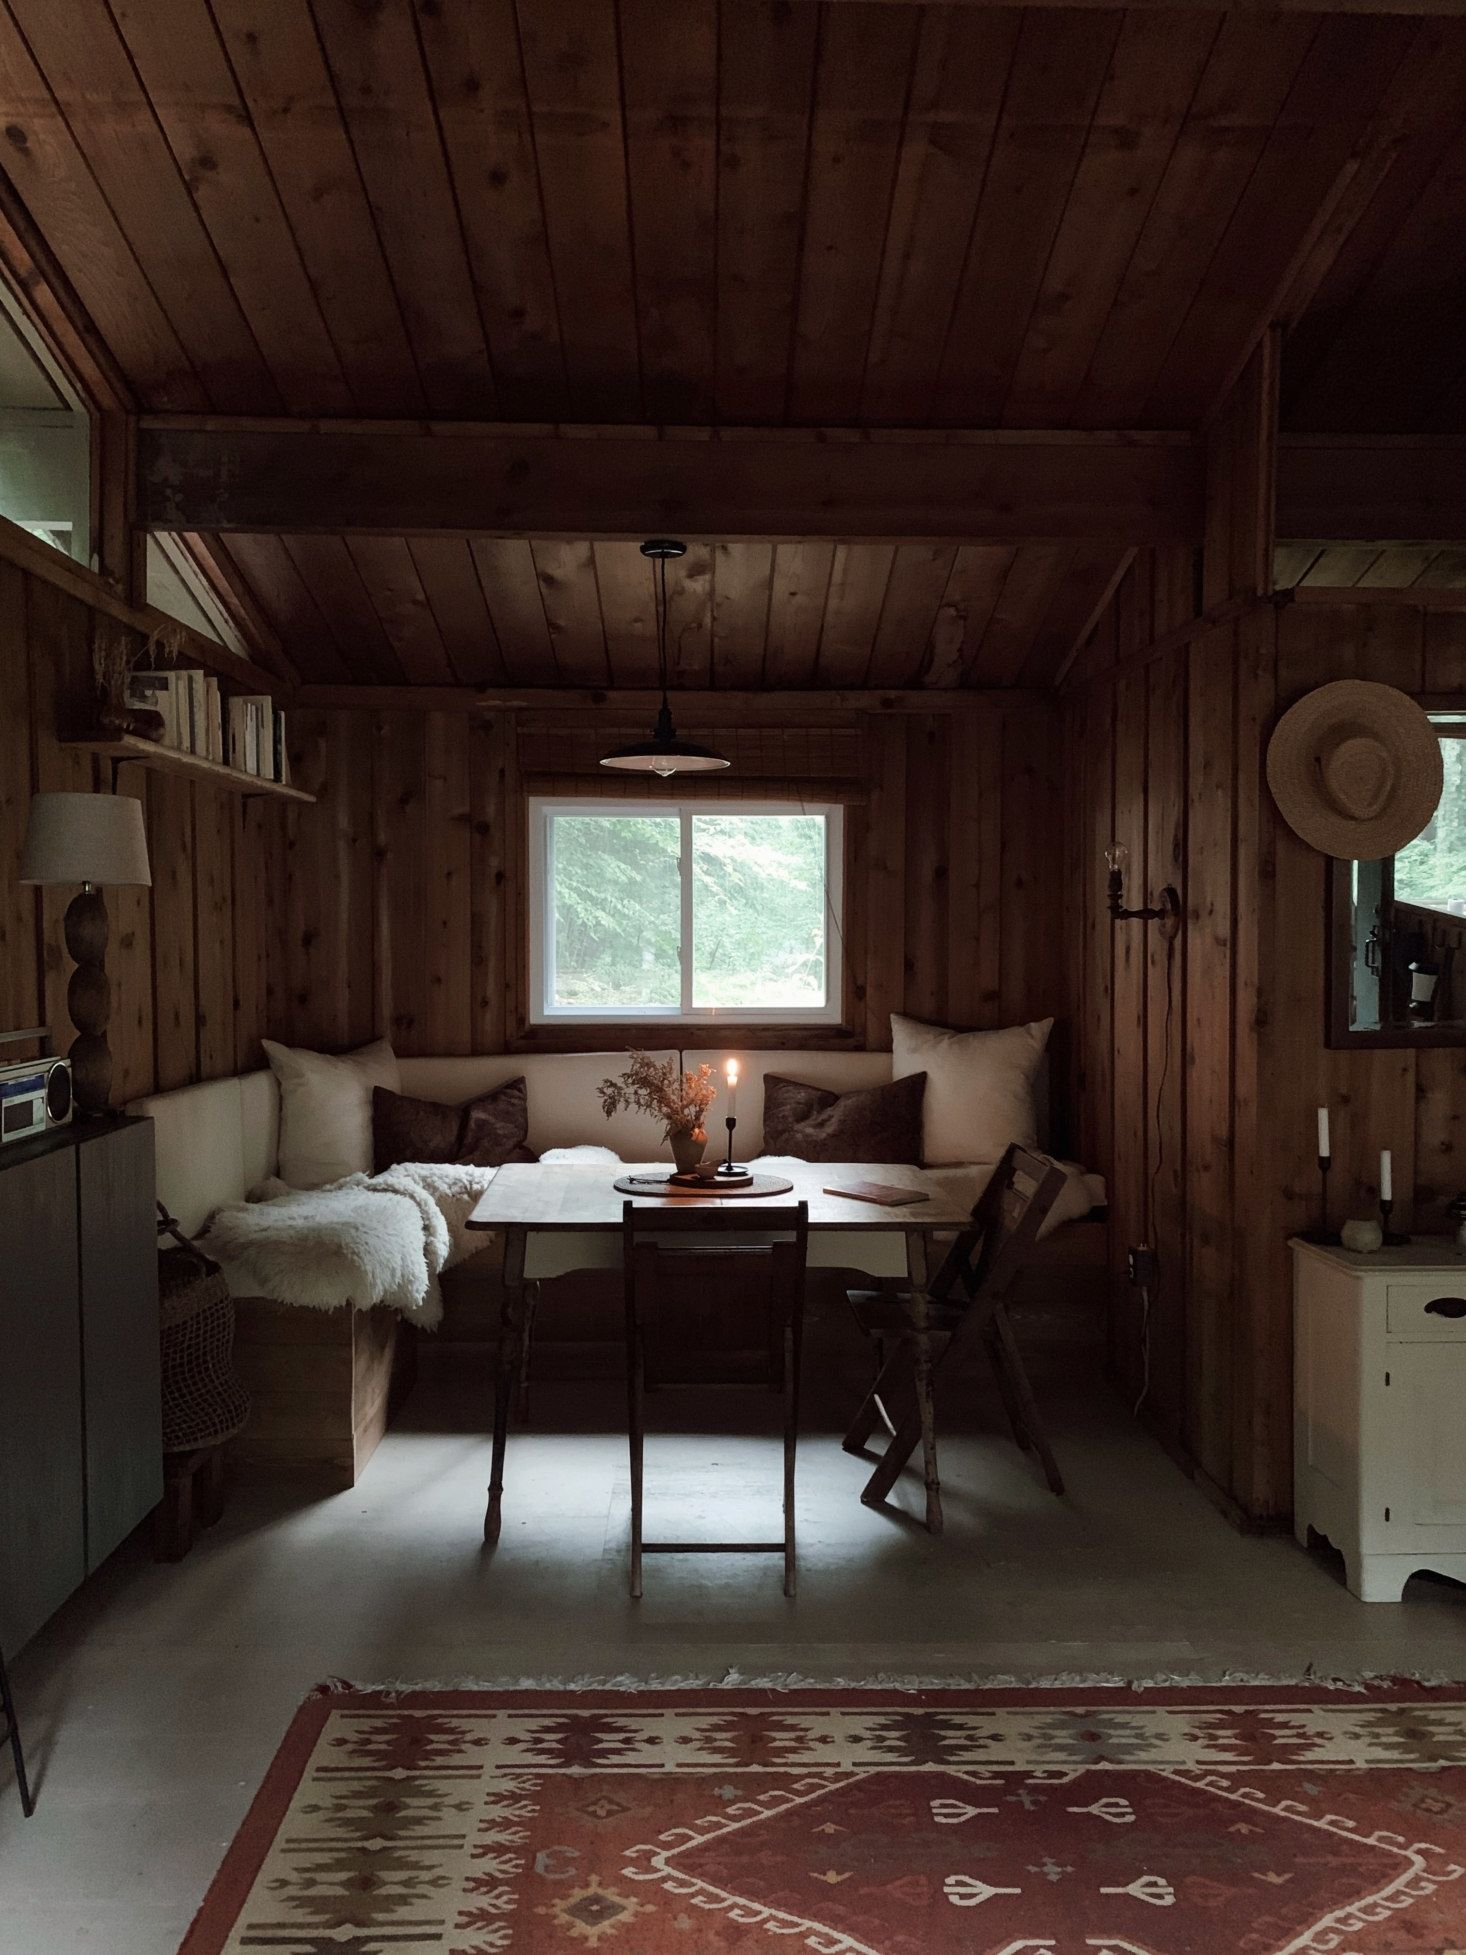 Unplugged A Young Couple S Diy Totally Off The Grid Cabin In The New Hampshire Woods Remodelista Cabin Design Cabin Interiors Cabin Living Room #small #cabin #living #room